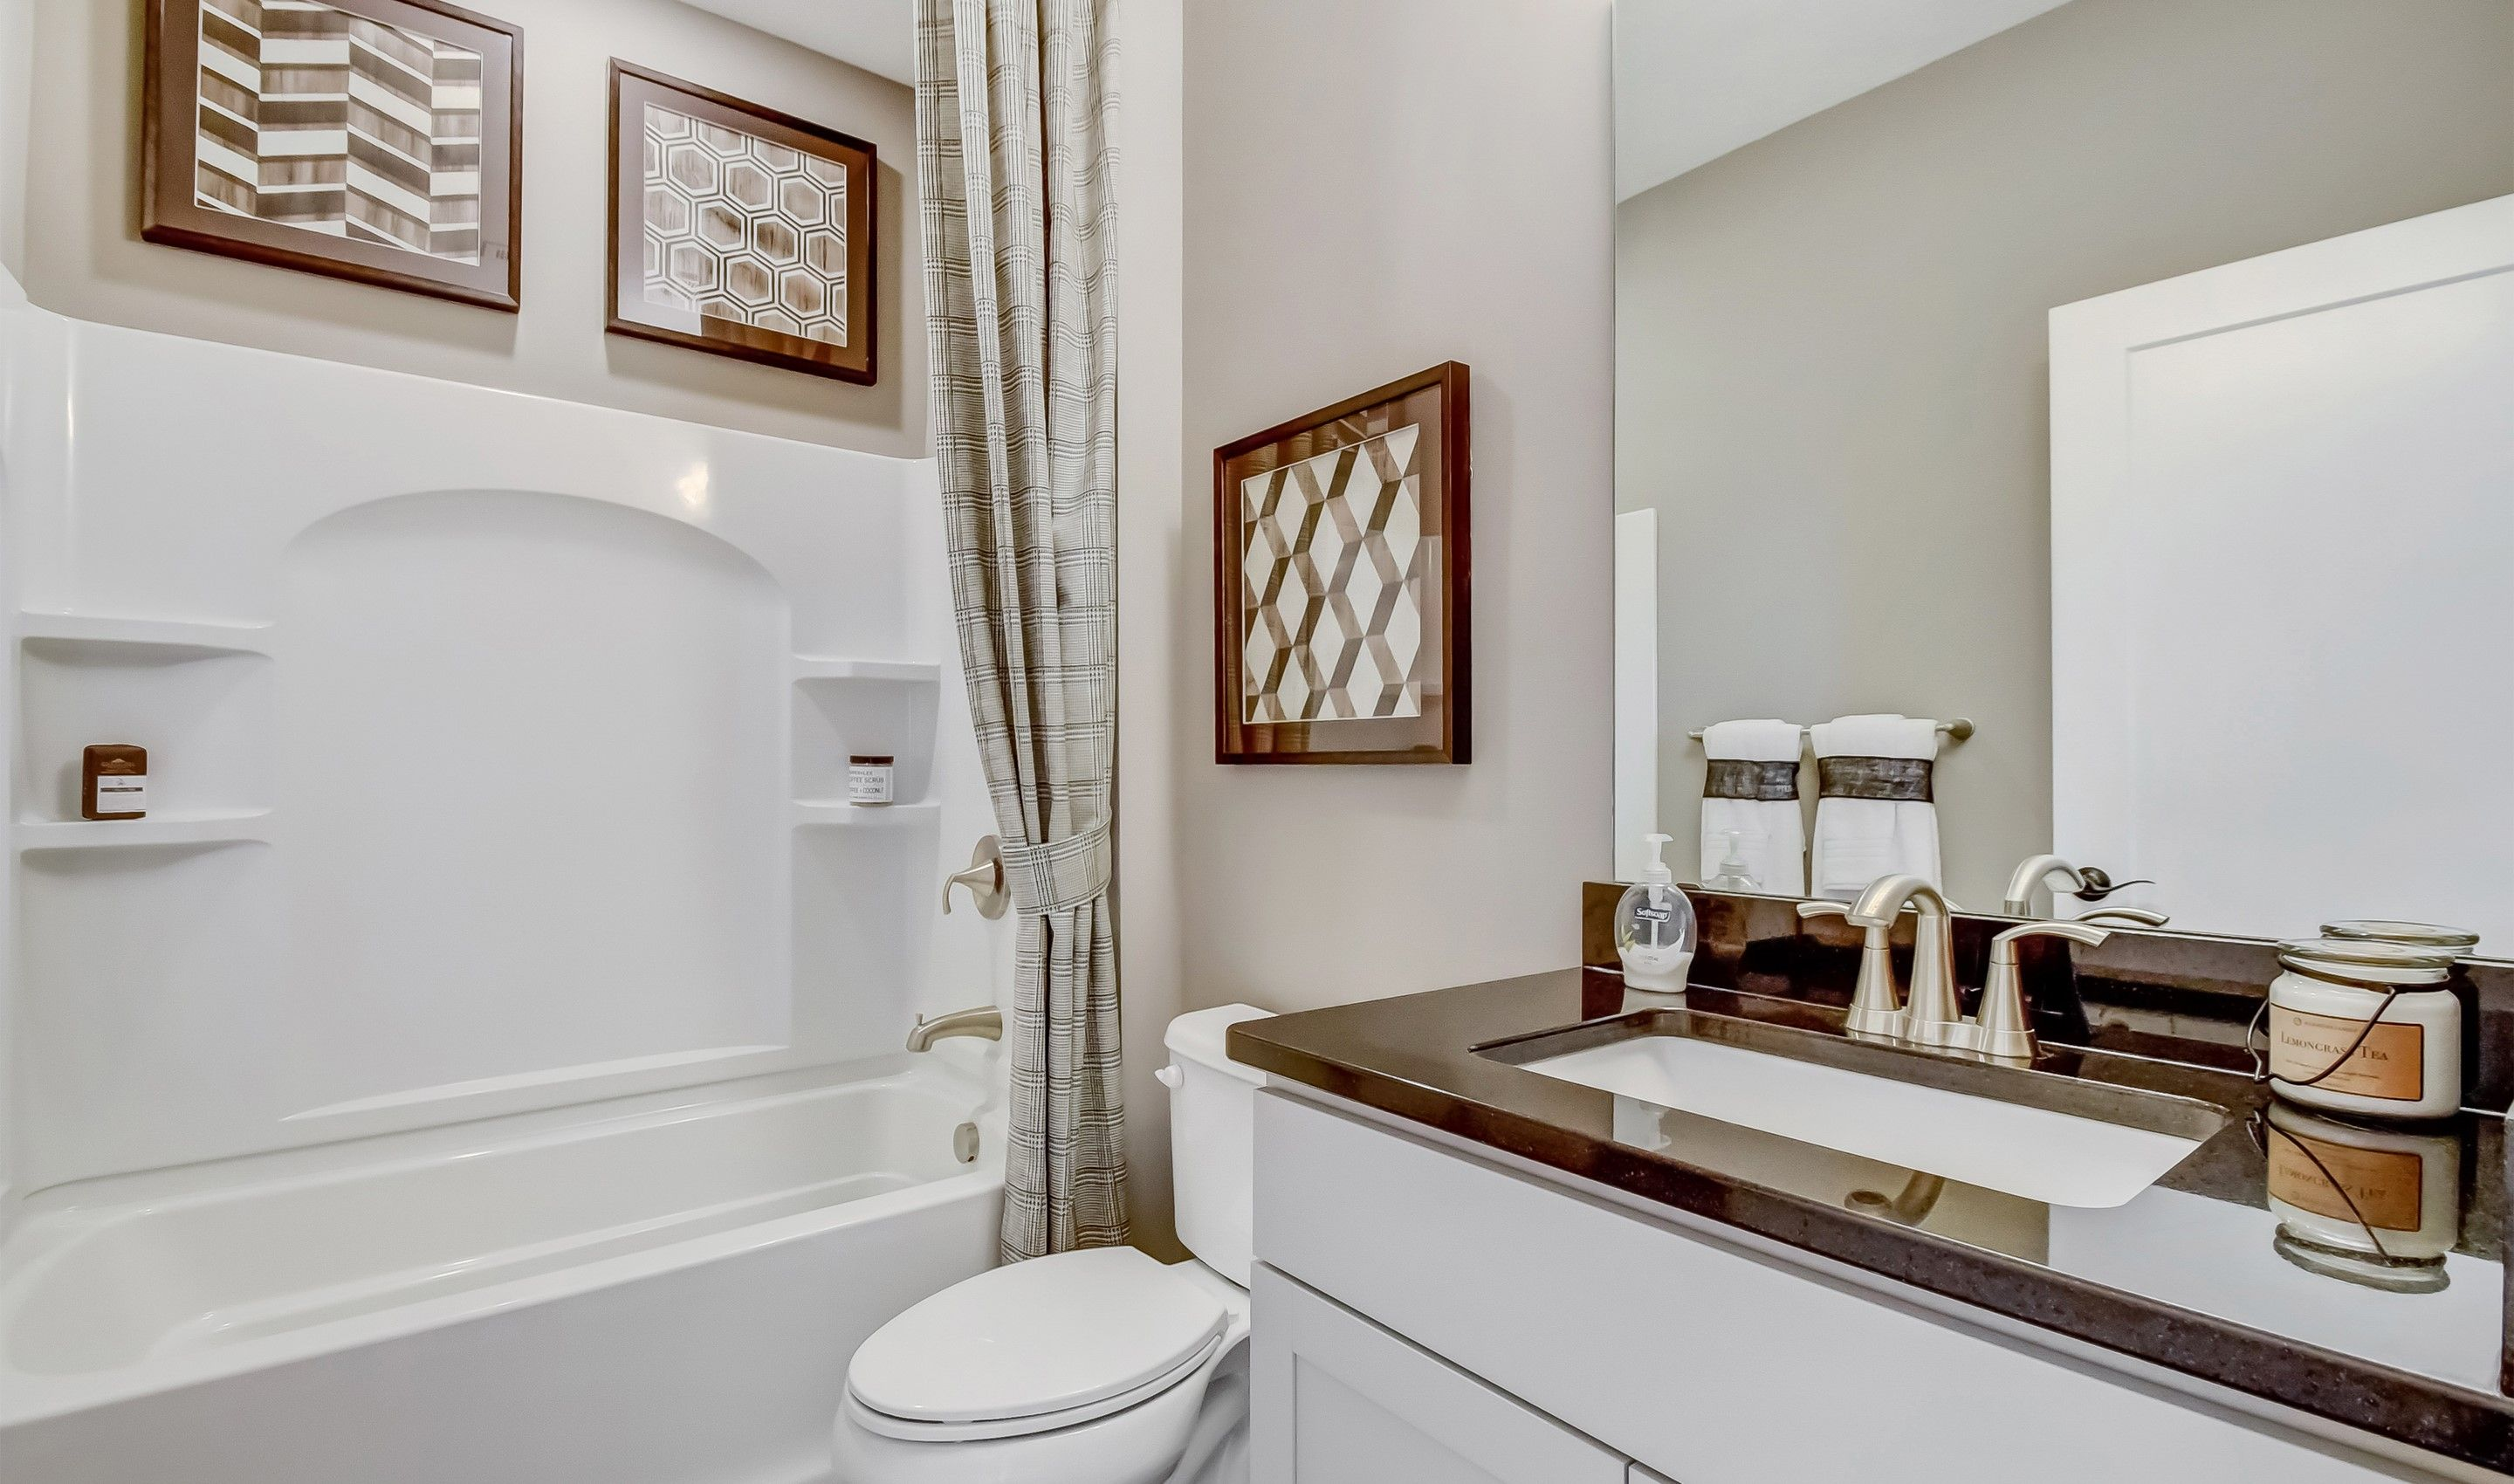 Bathroom featured in the Killarney By K. Hovnanian's® Four Seasons in Cleveland, OH